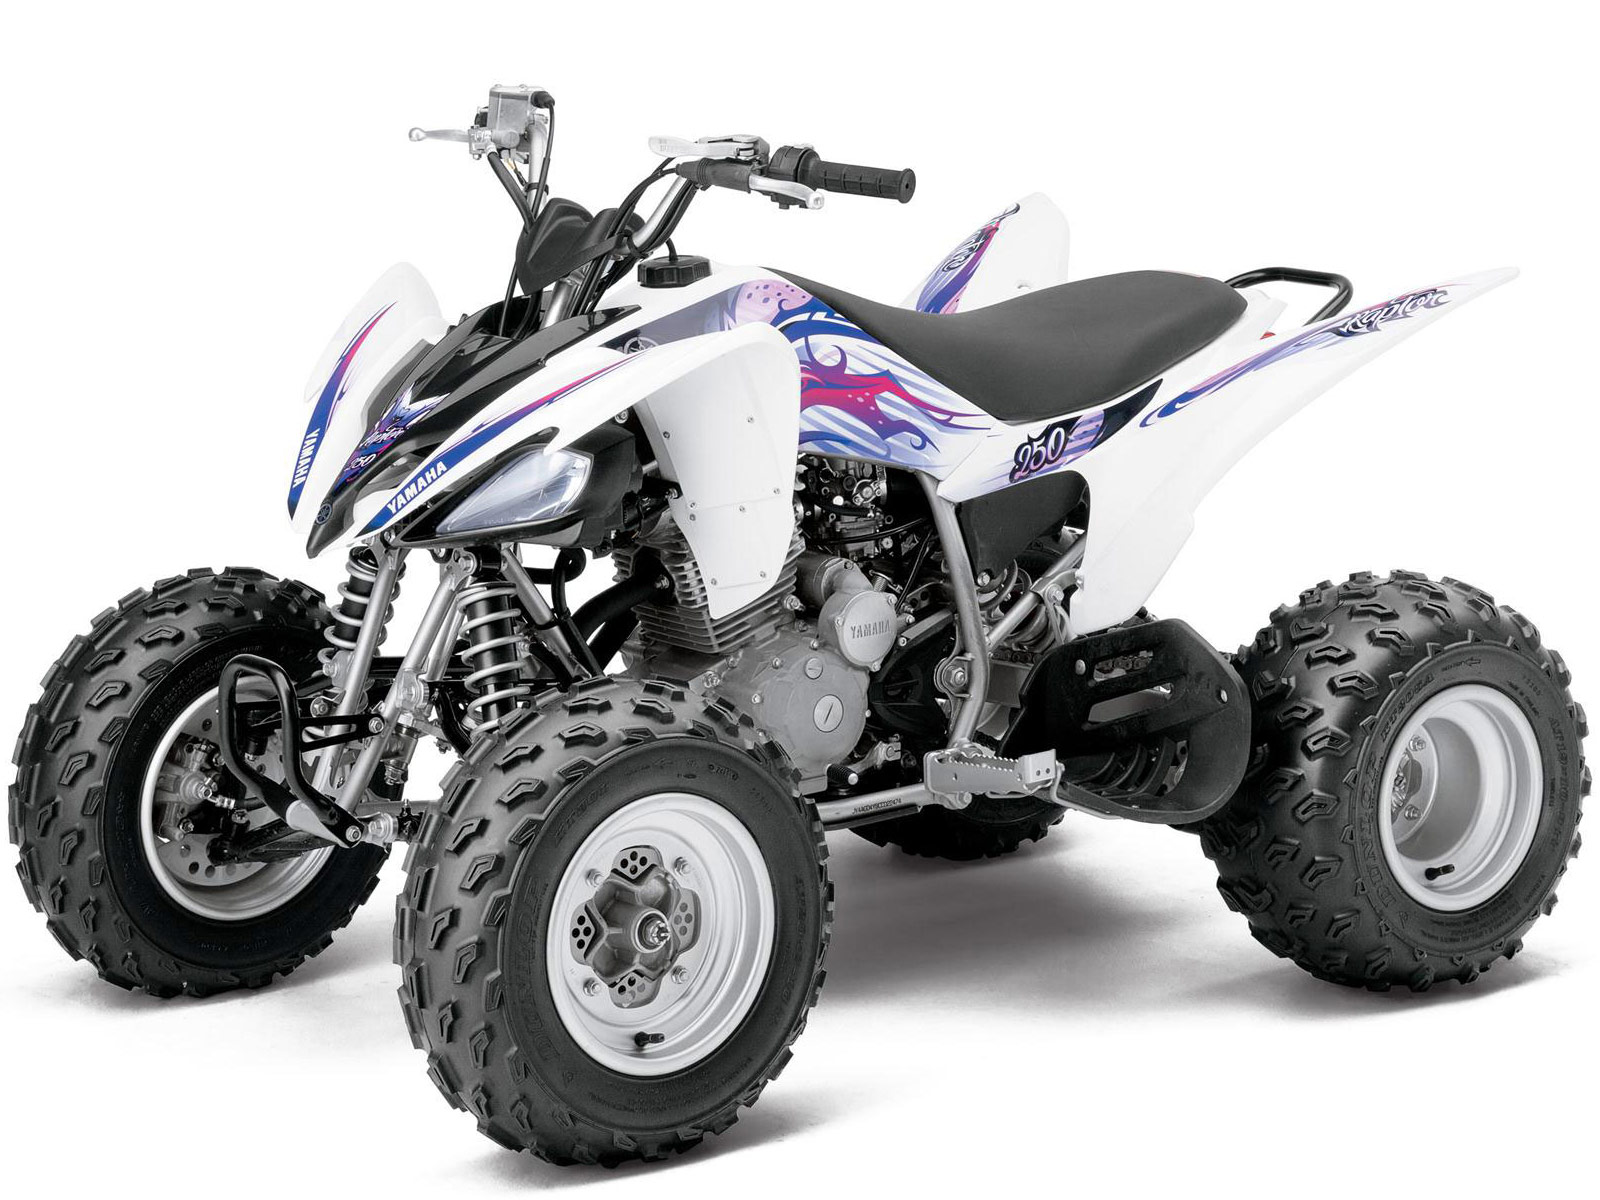 Raptor 250 2013 yamaha atv pictures specifications for Yamaha raptor 250 price